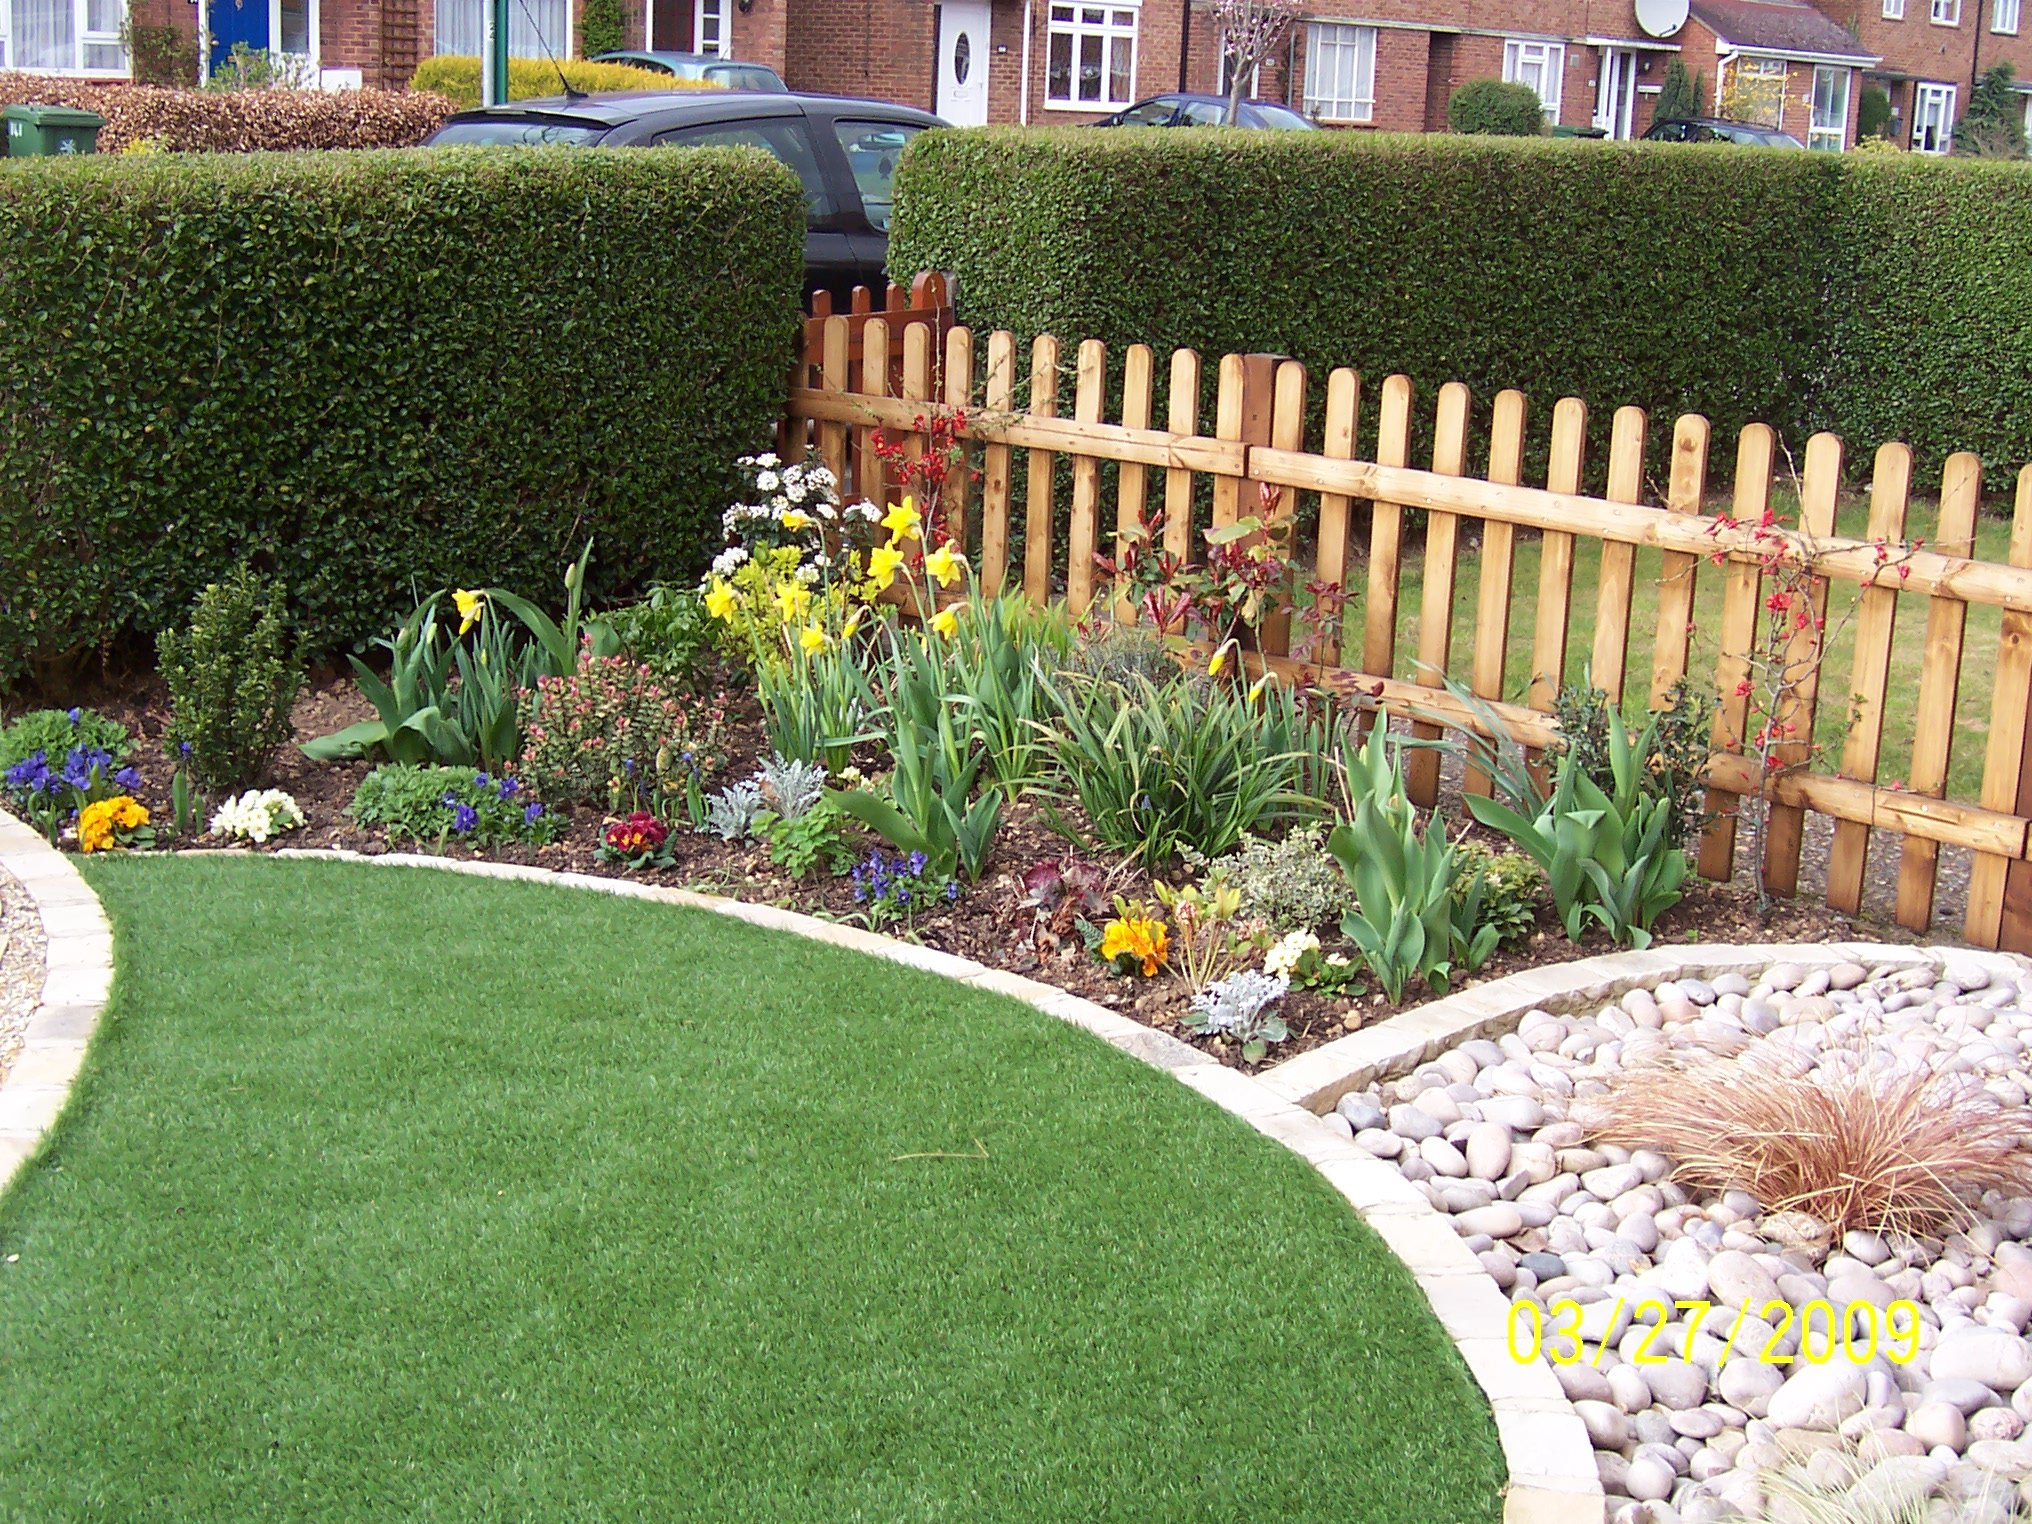 wright choice gardening experienced gardeners in watford